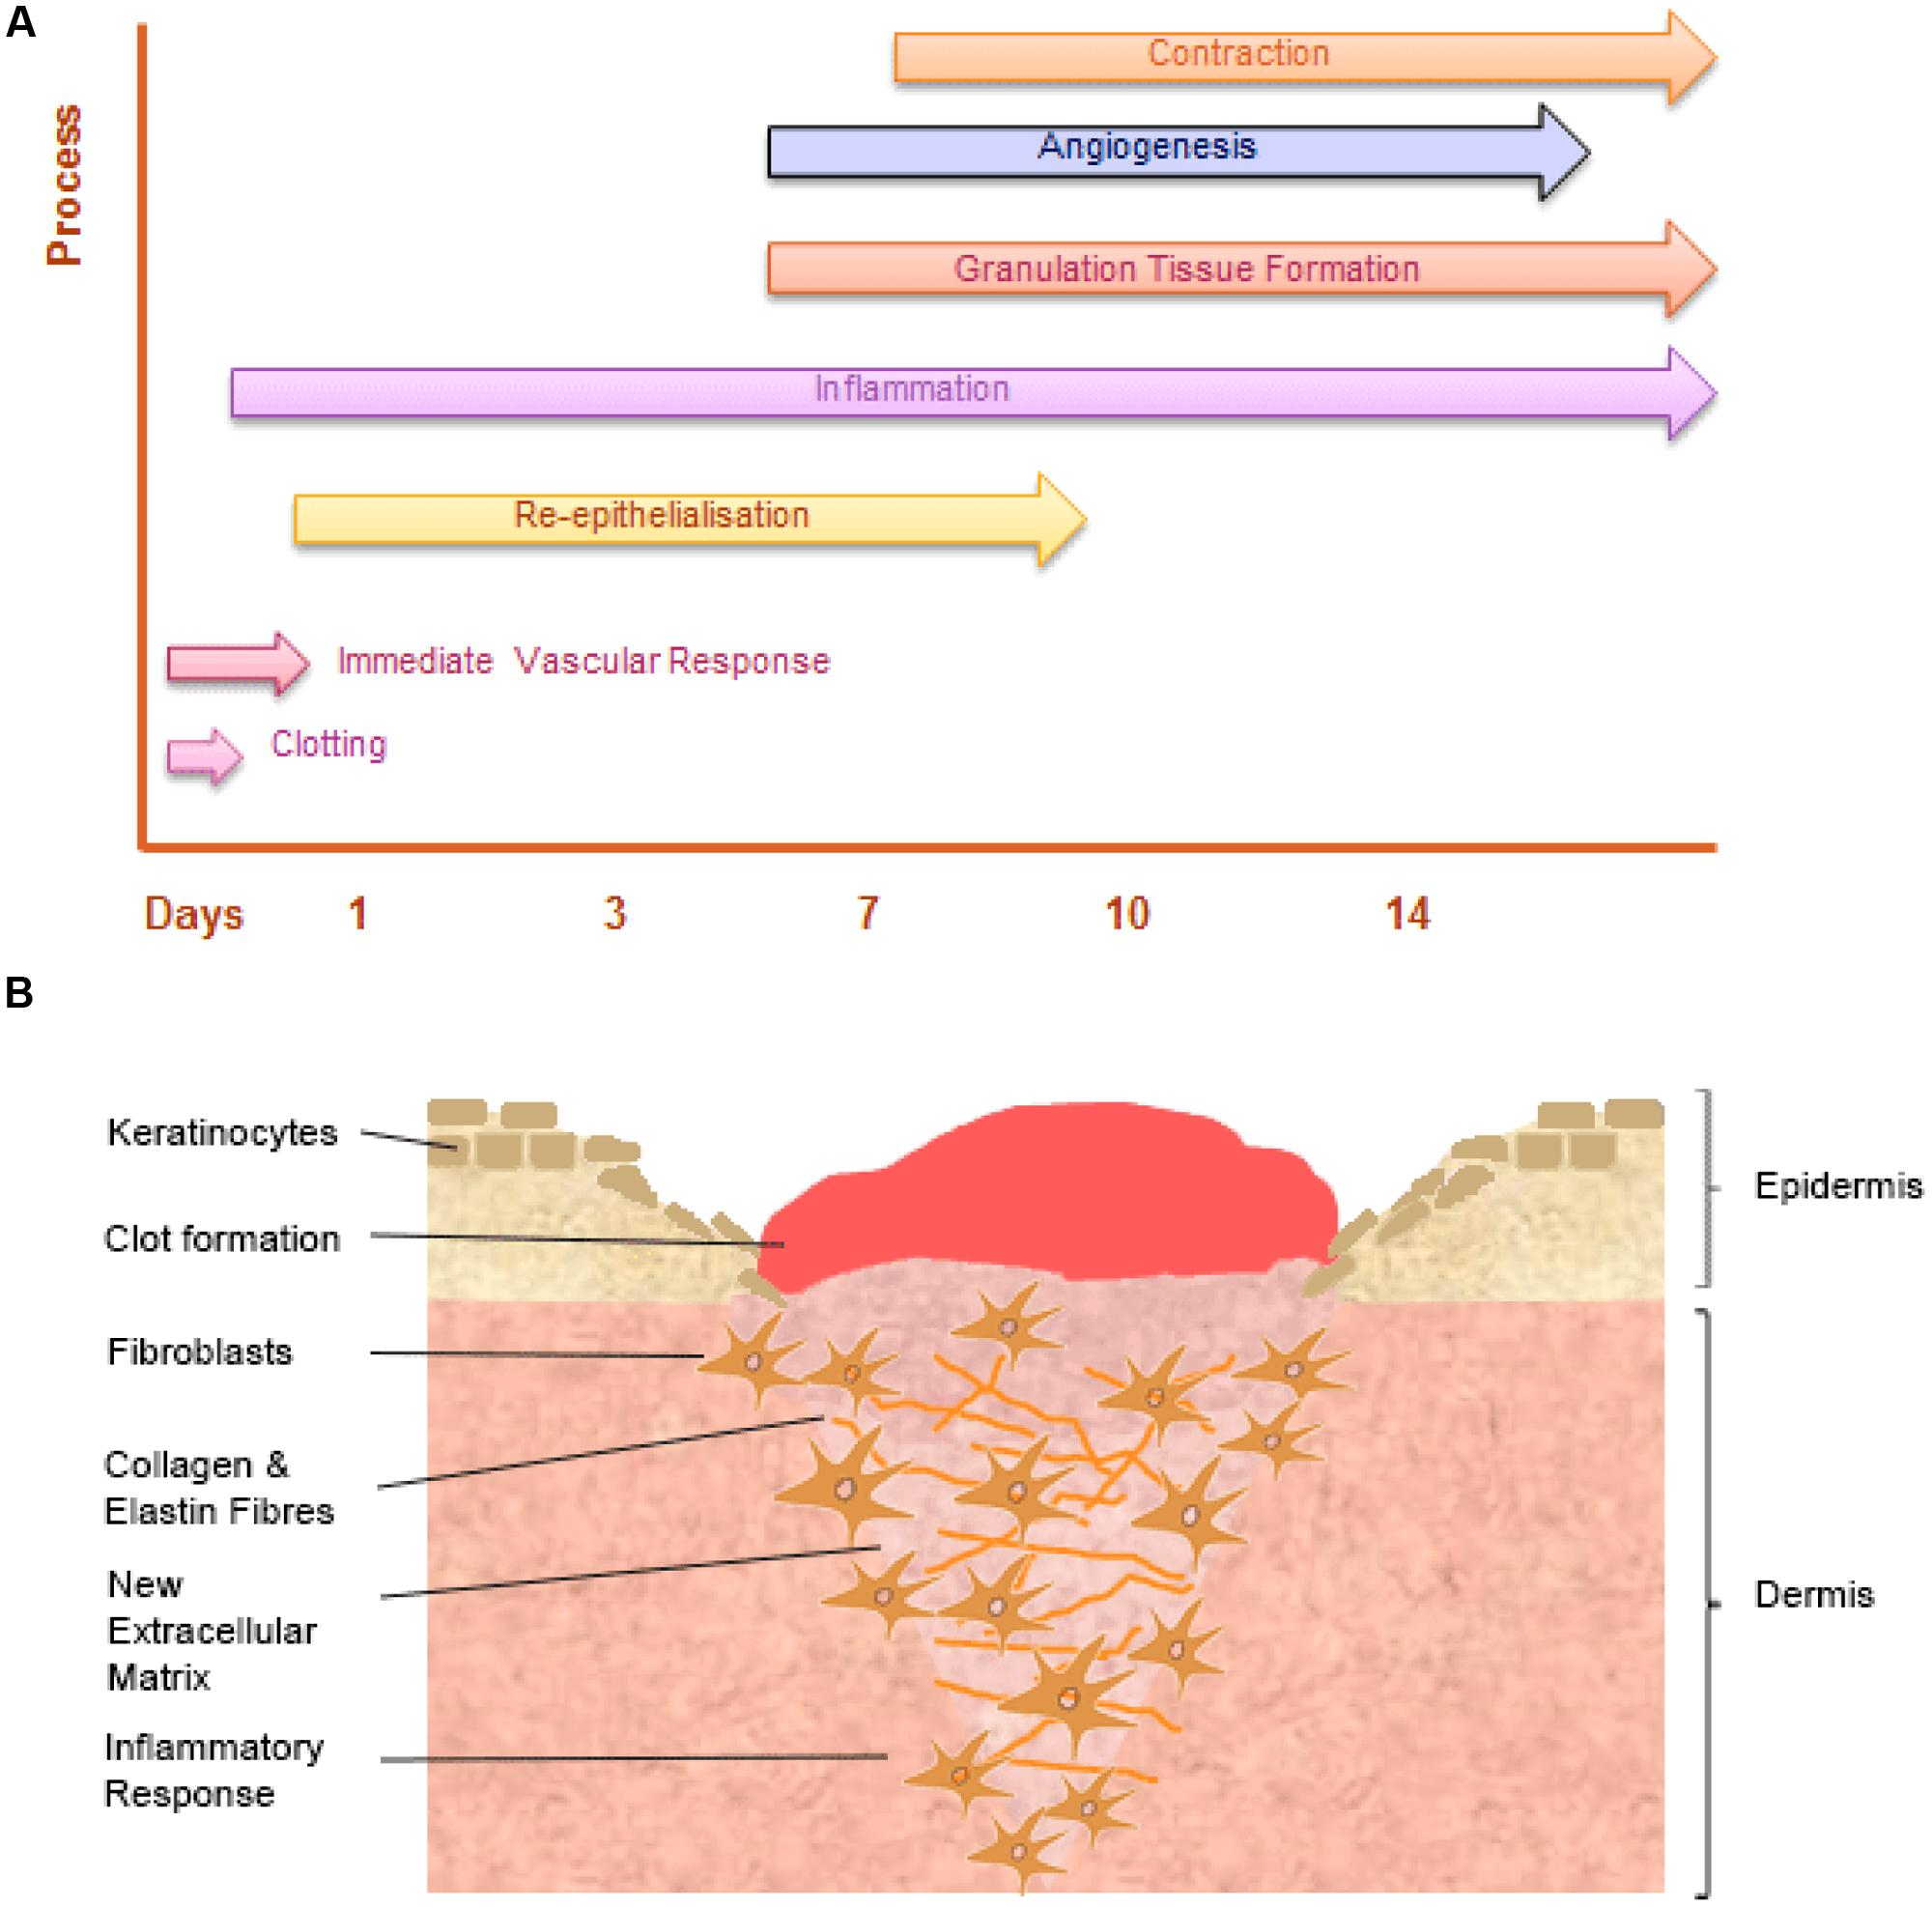 Frontiers | The role of iron in the skin and cutaneous wound